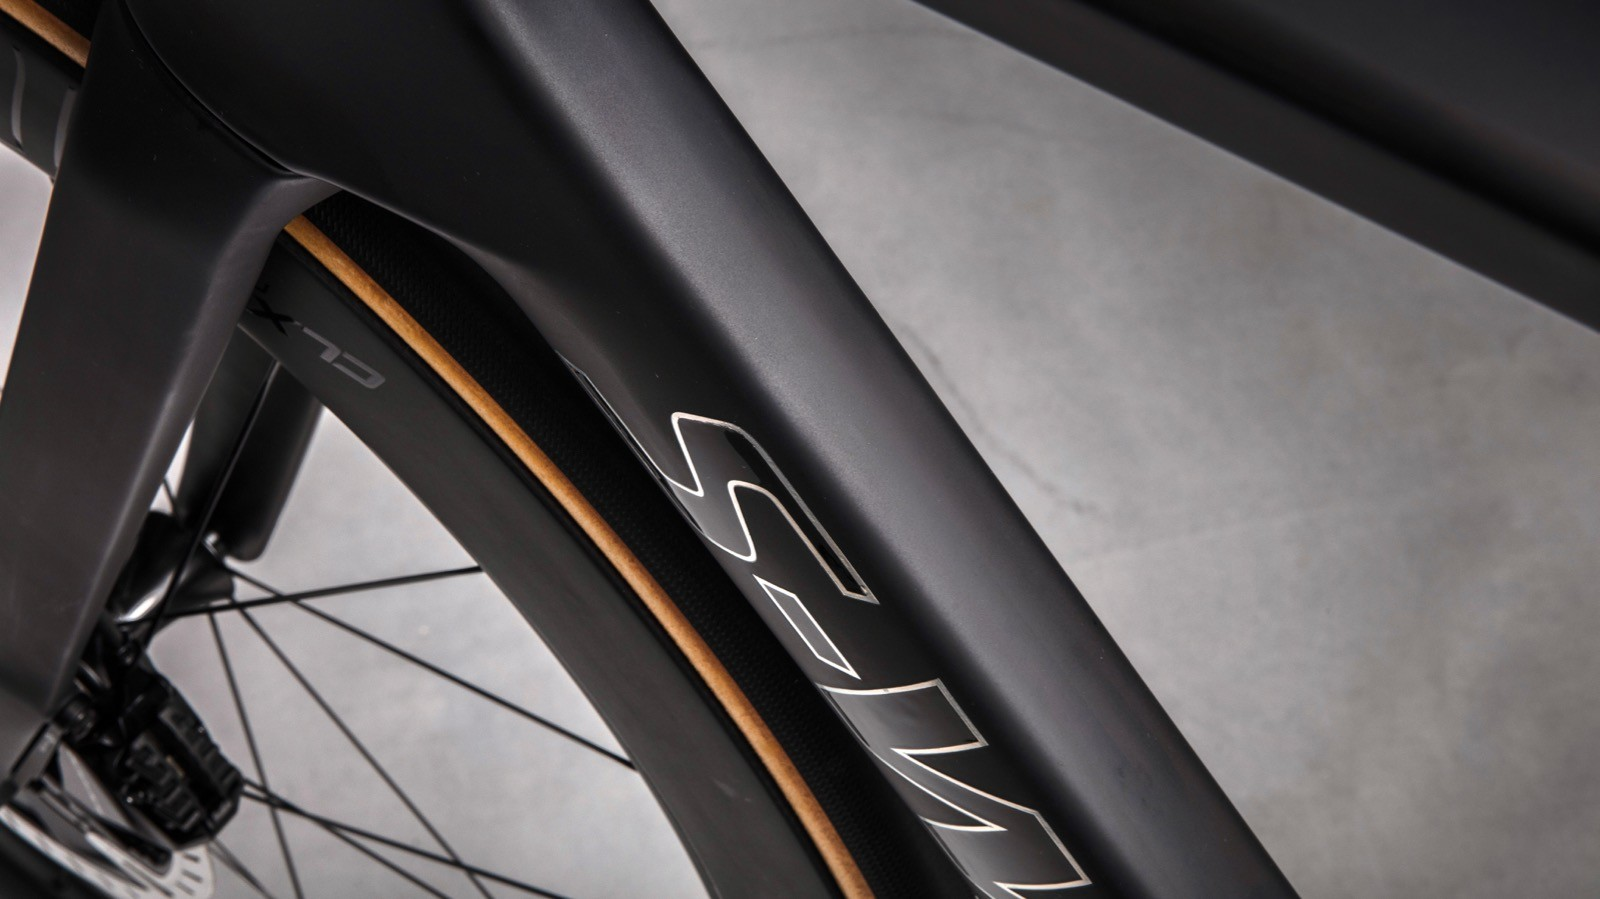 Specialized claims that the frameset is right on the performance edge —any more aero and it would be heavier; any lighter and it would be less aero